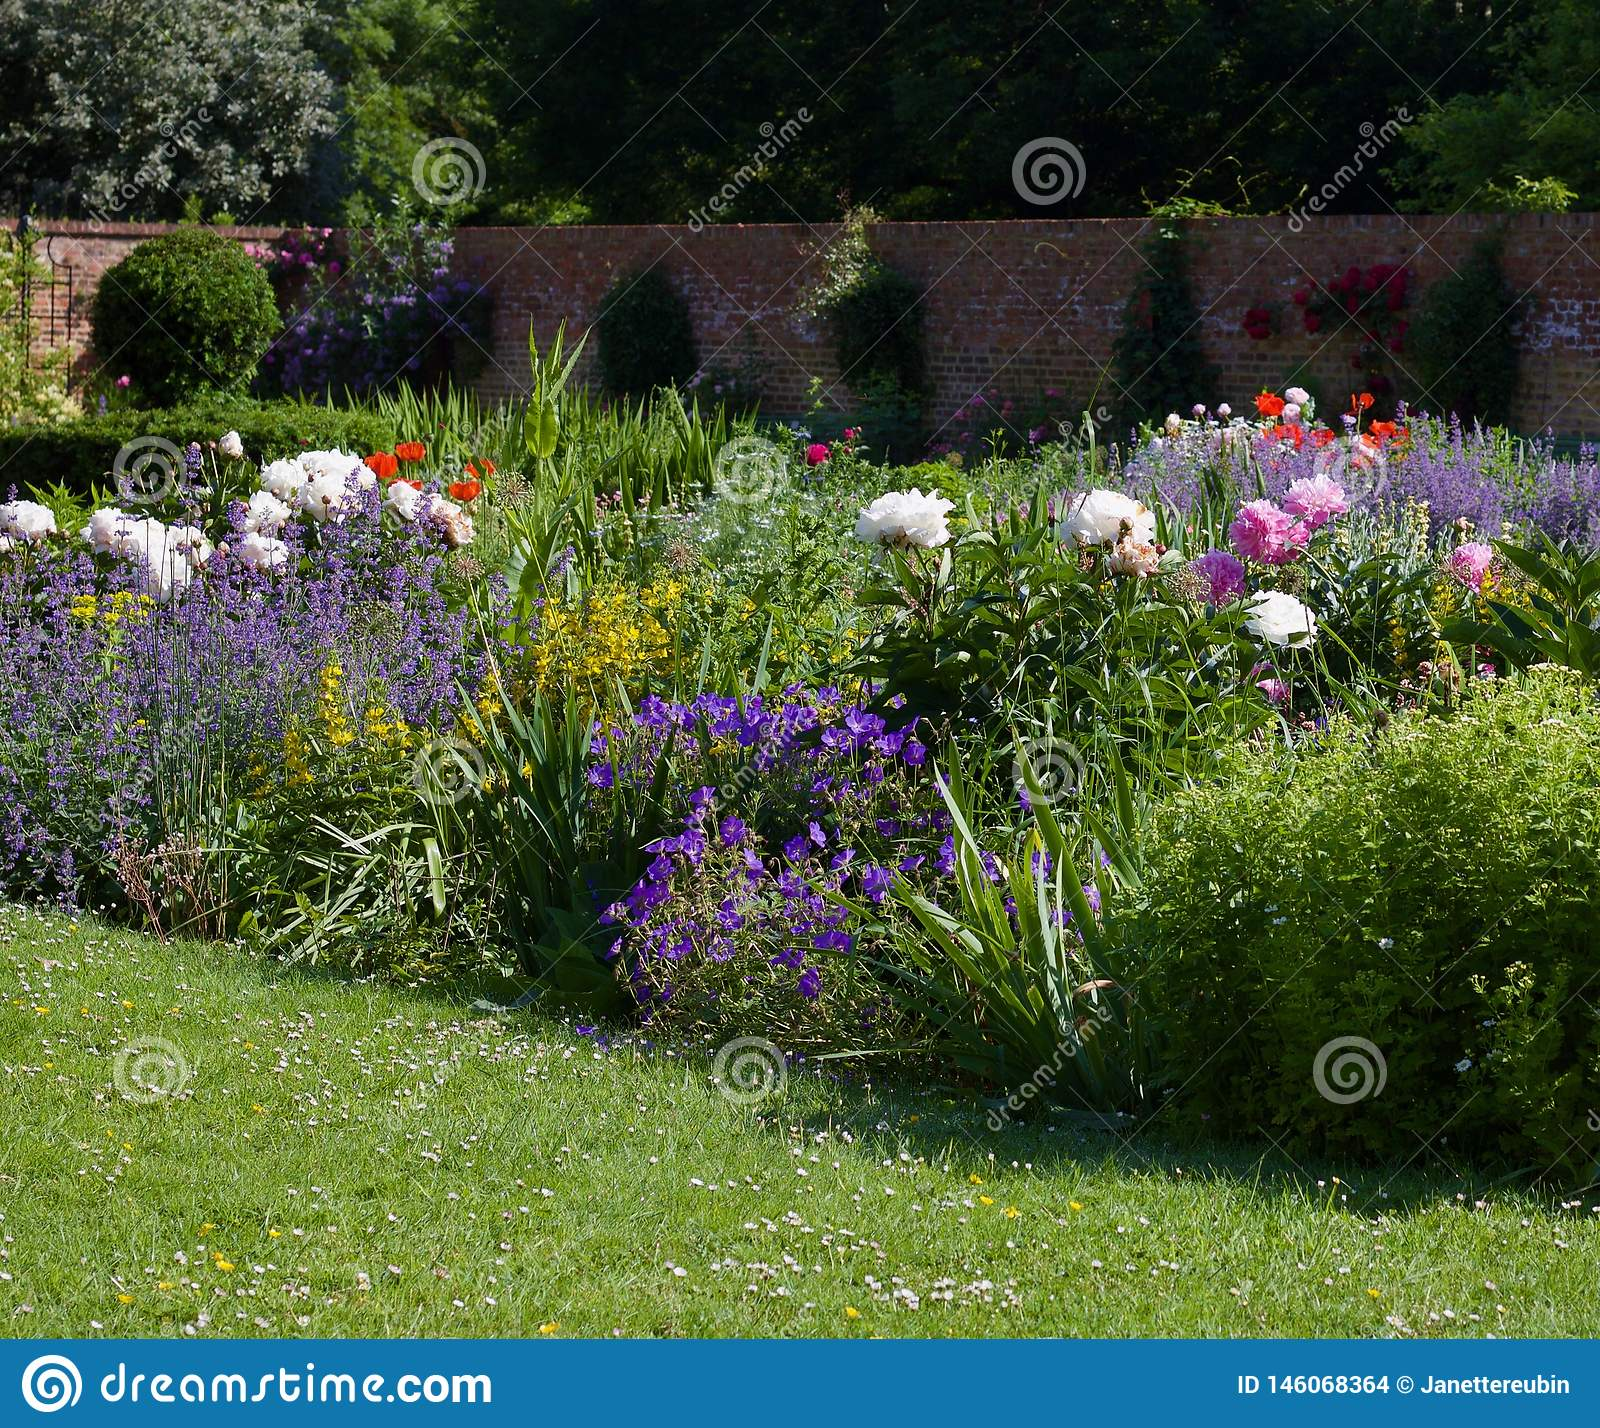 English cottage garden with lawn in foreground, lush flower bed and wall in background with copy space - image